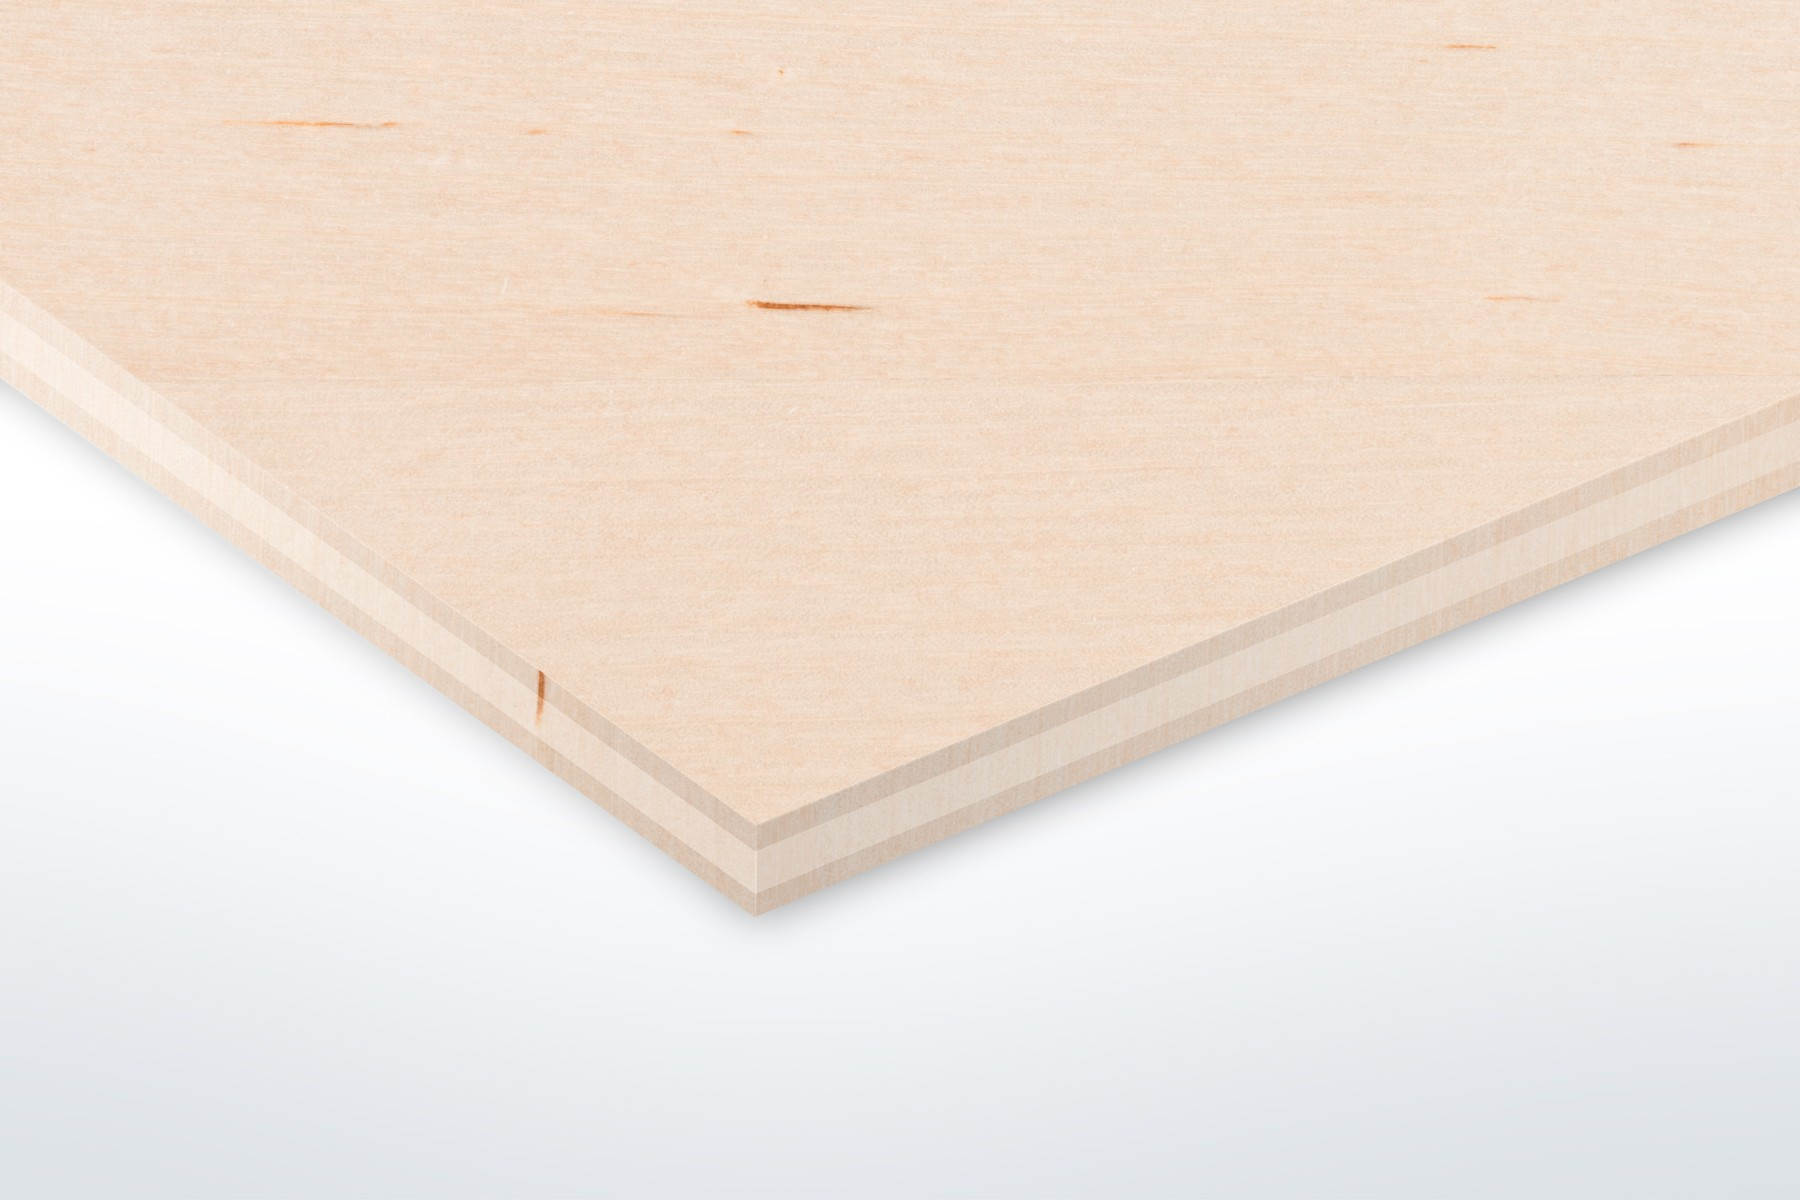 Poplar Plywood - 600 x 300mm - 6mm